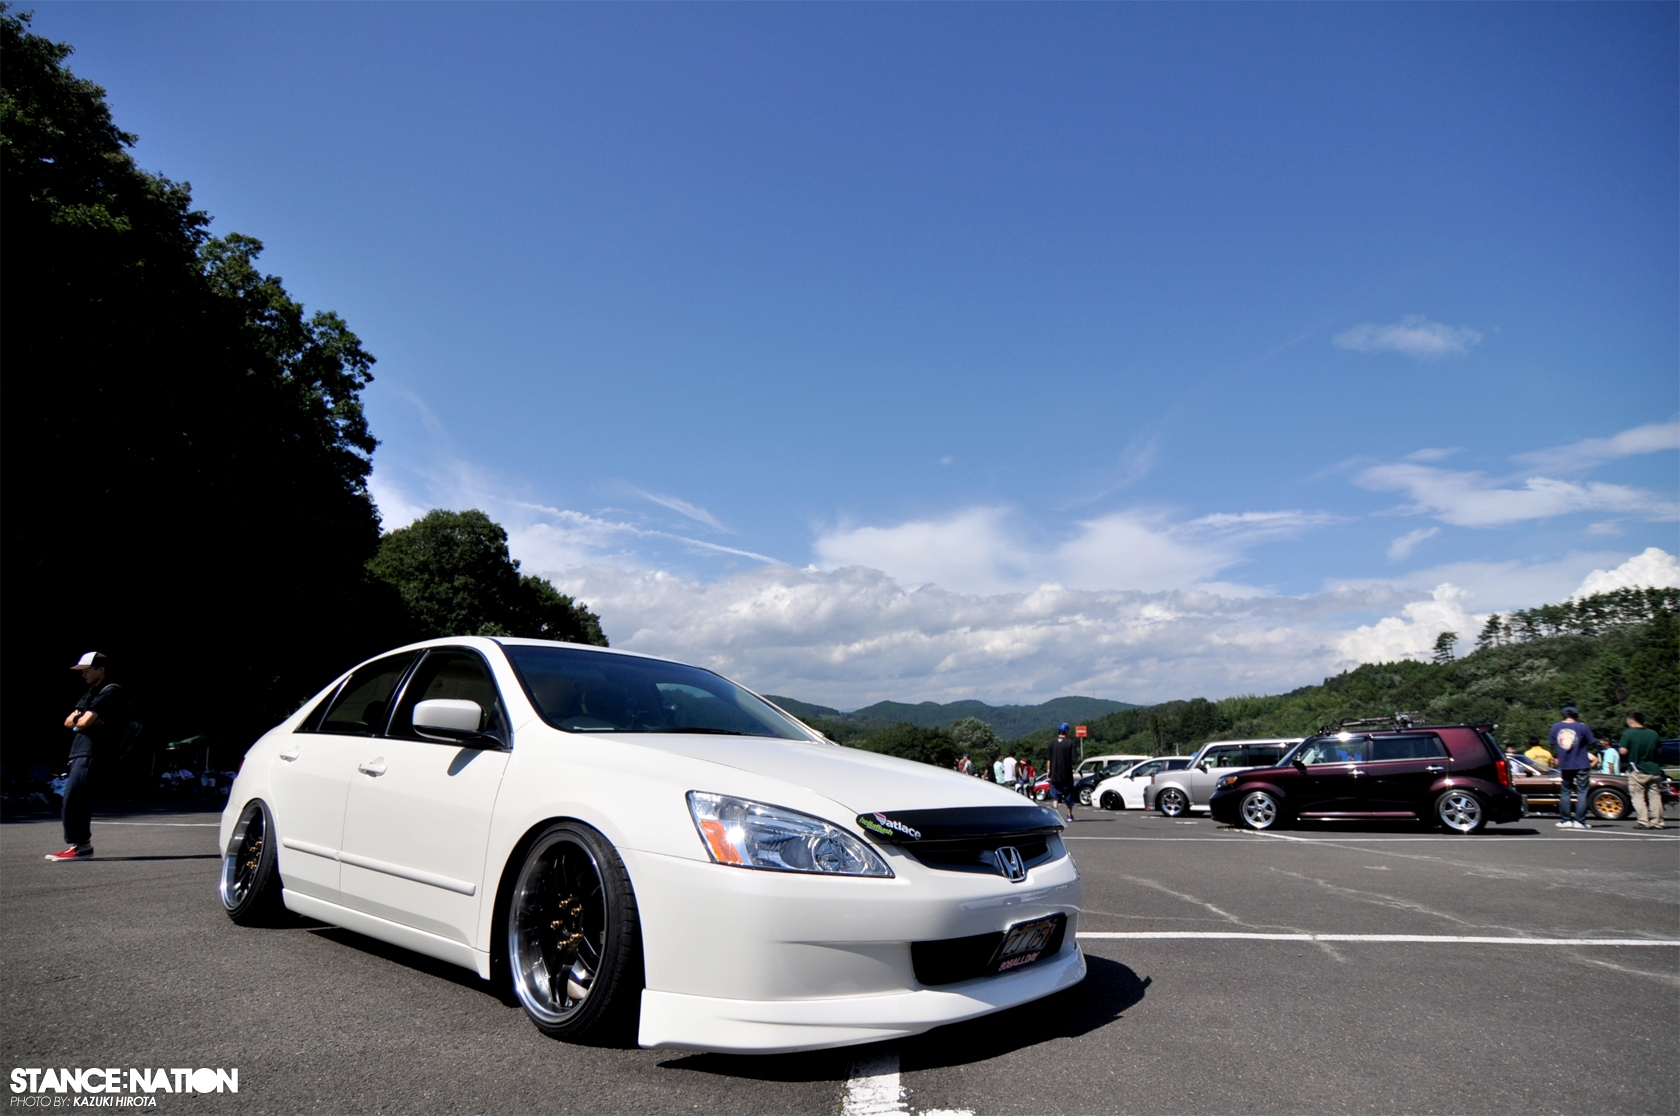 yama83 2003 Honda Accord Specs, Photos, Modification Info at